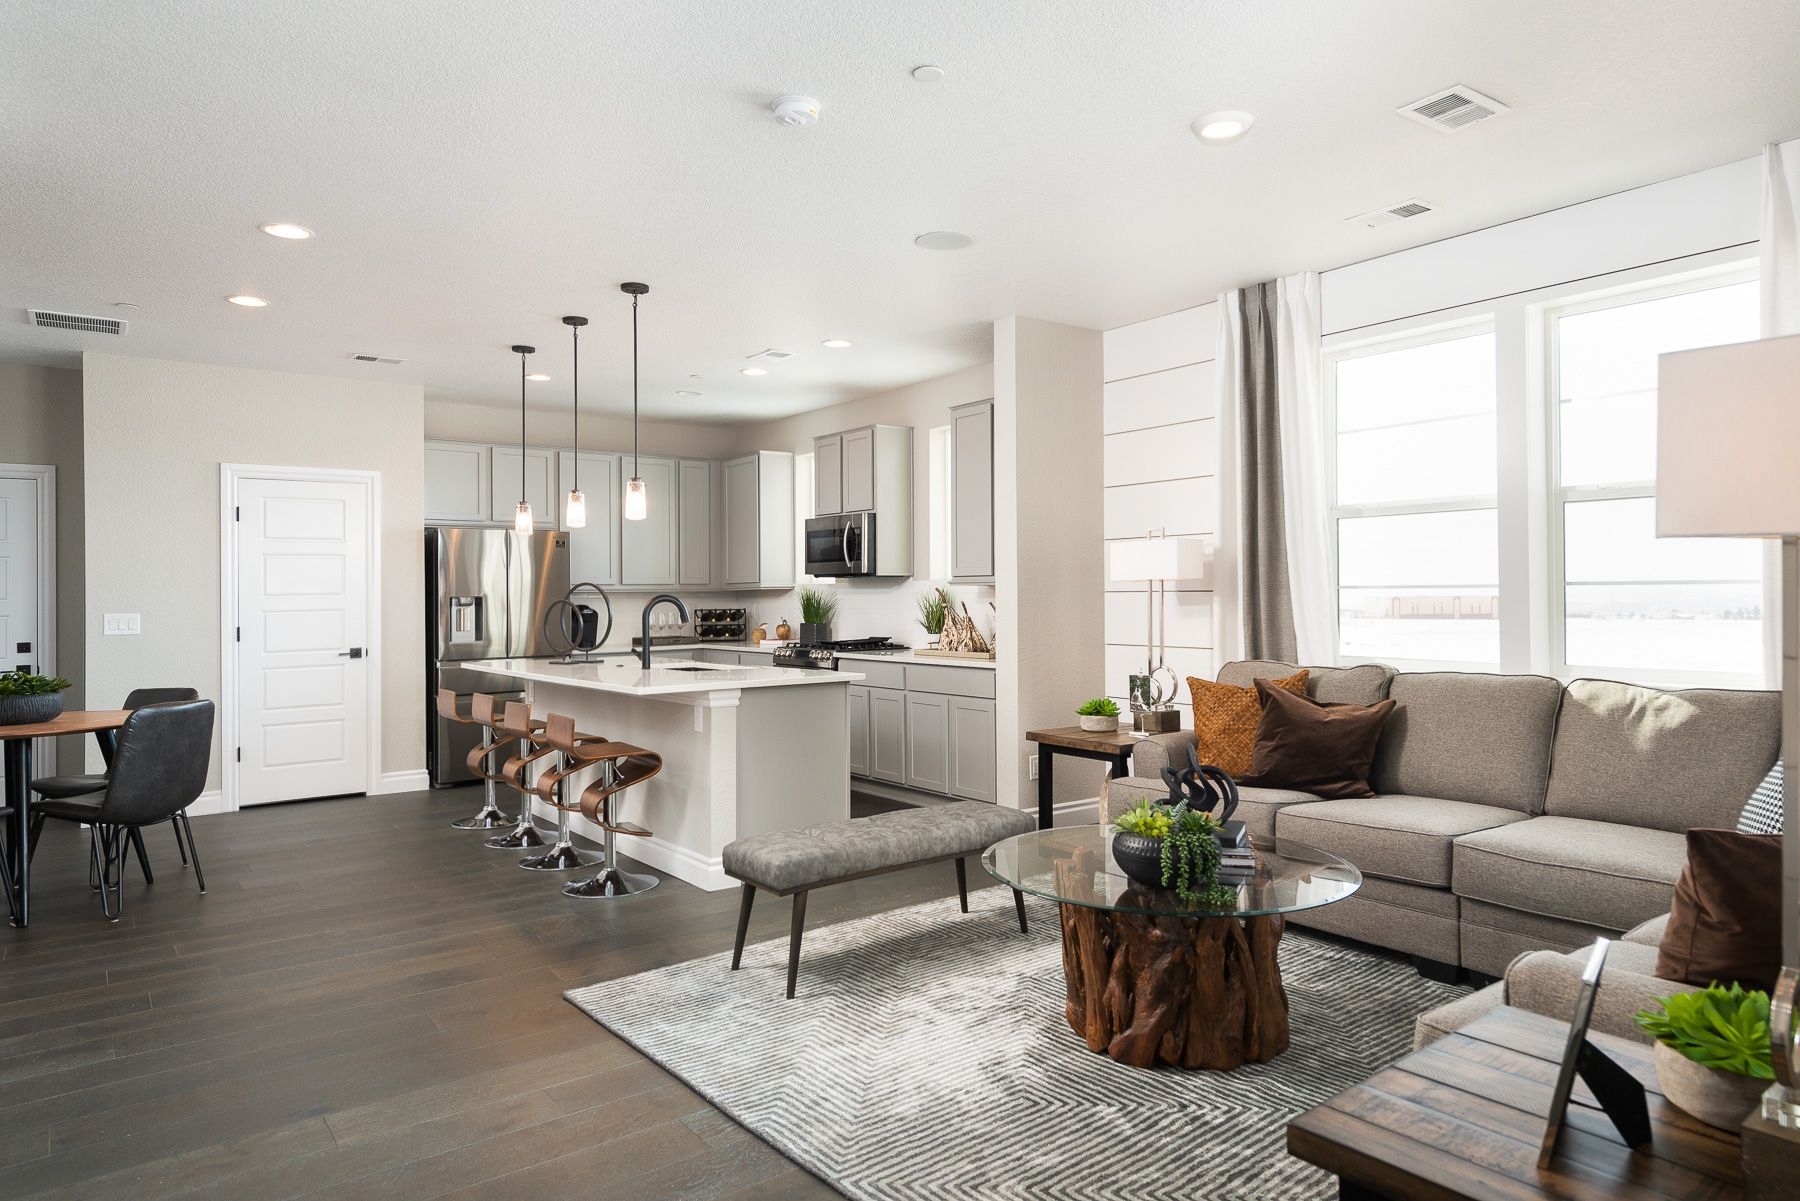 'The District at Victory Ridge' by Lokal Homes in Colorado Springs